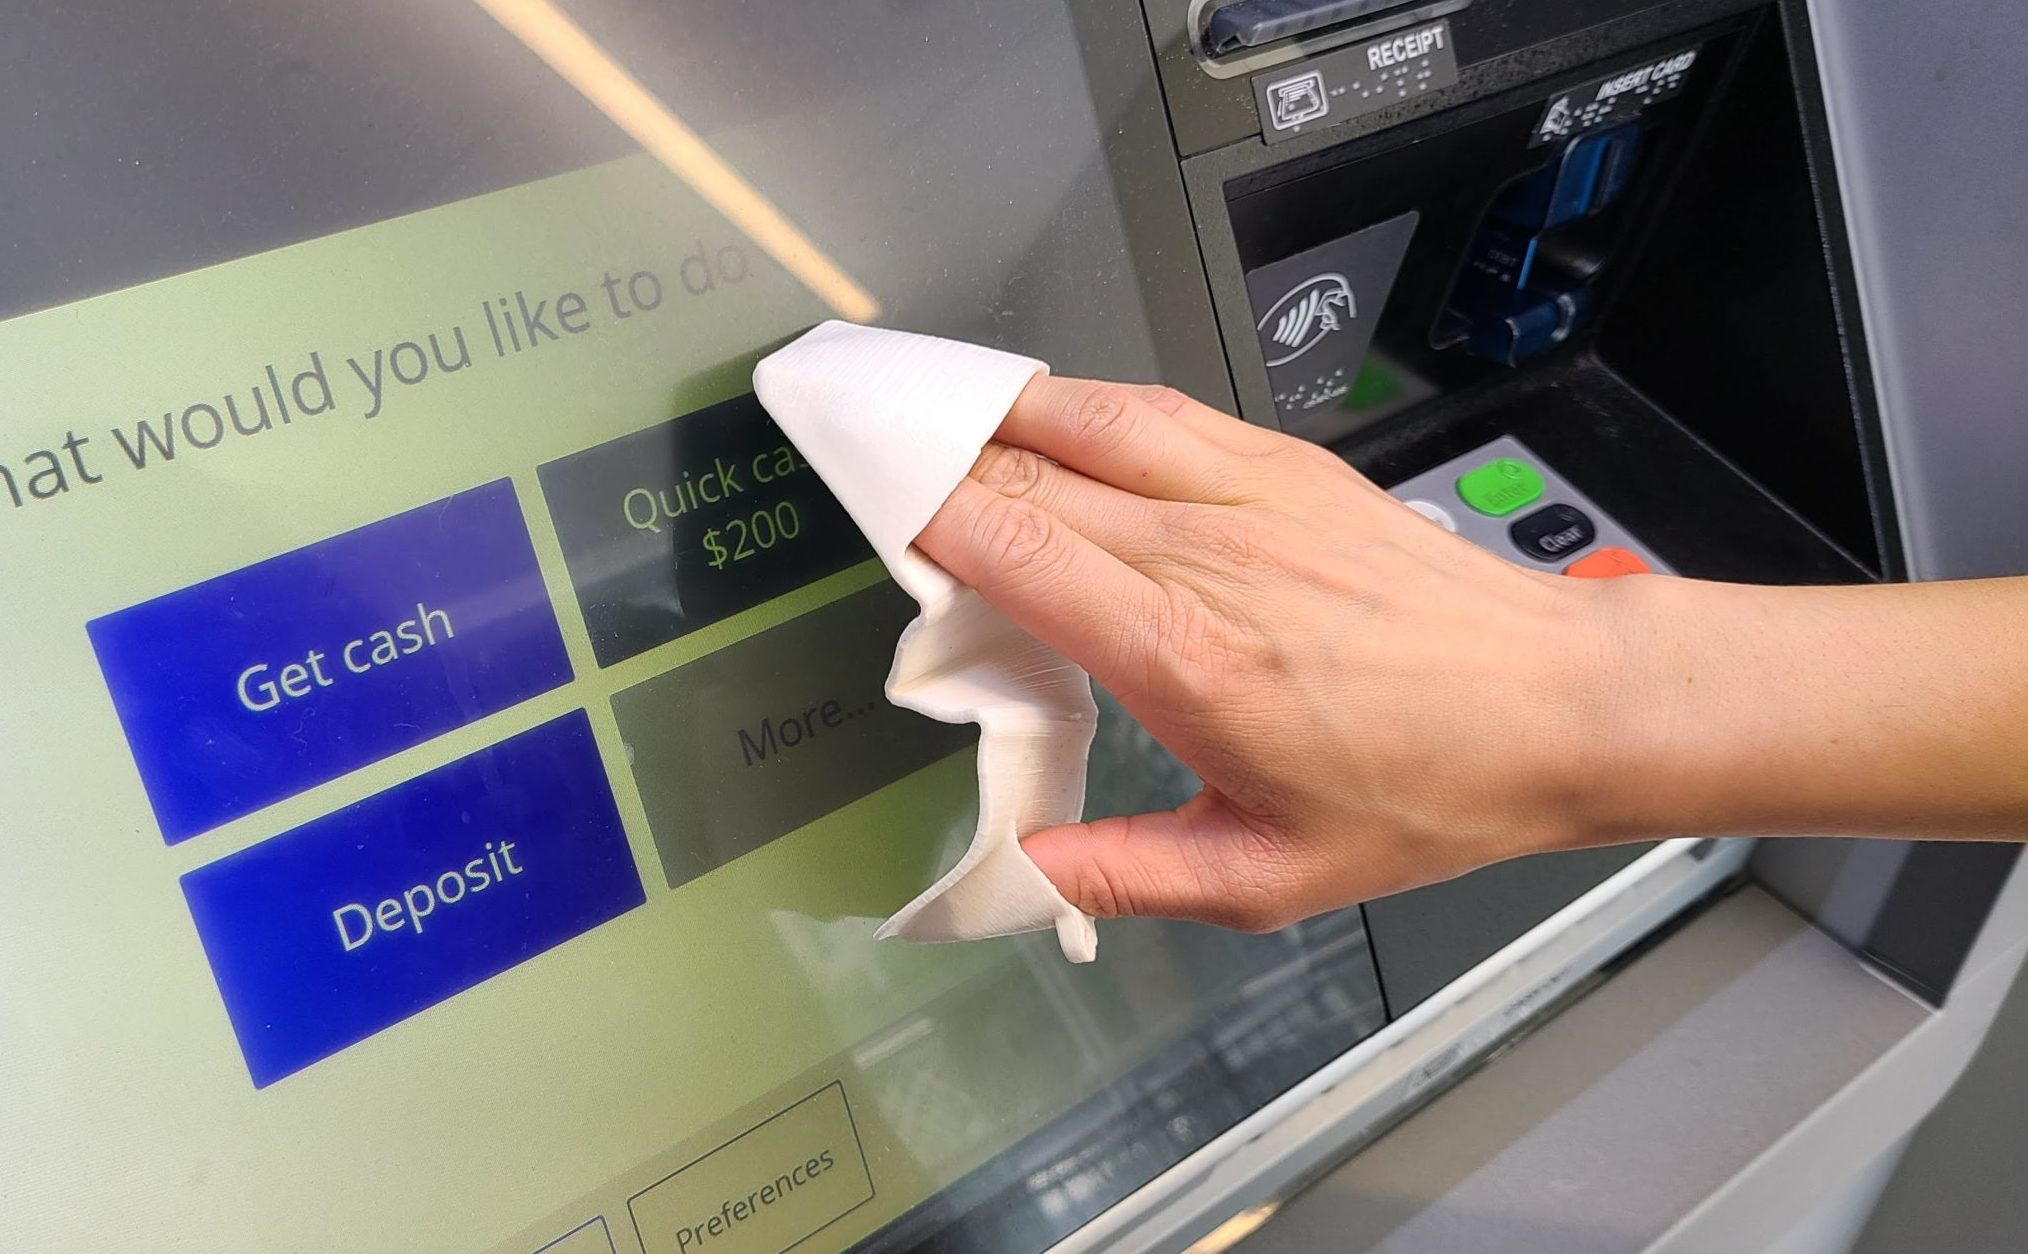 NONTACT at the ATM